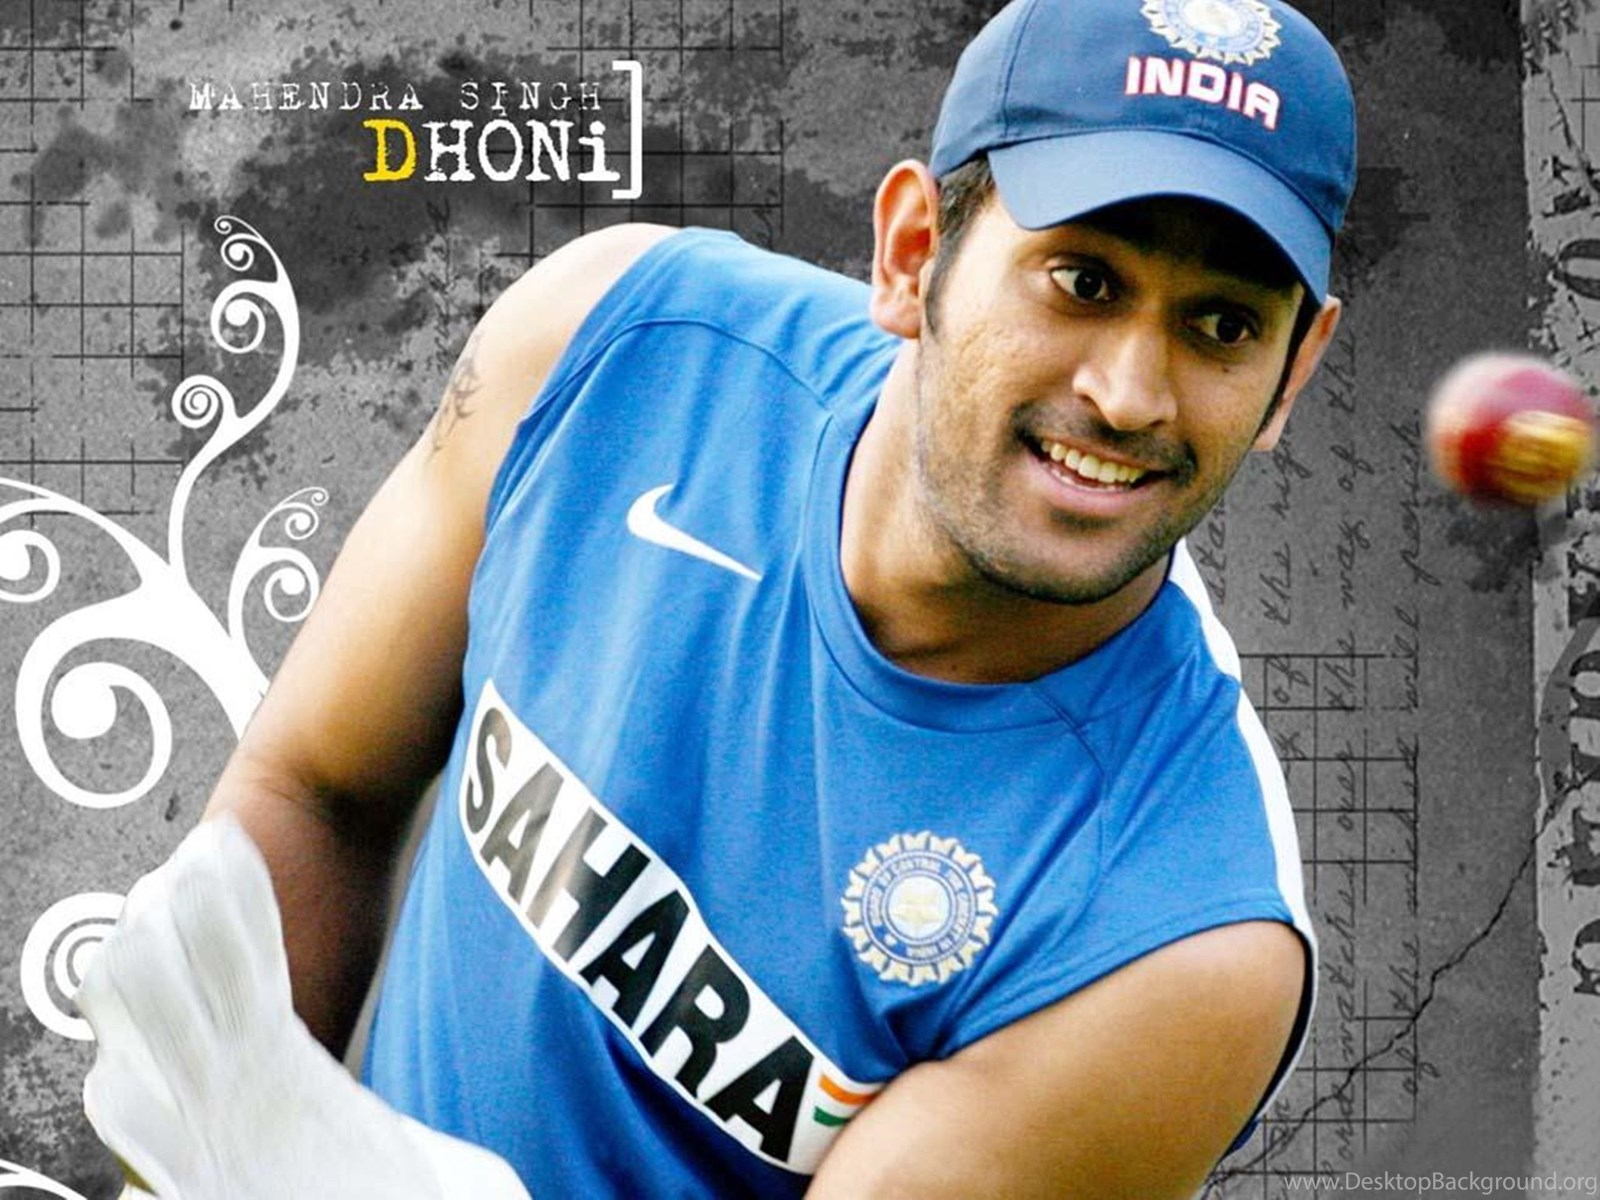 mahendra singh dhoni essay Mahendra singh dhoni's life story mahendra singh dhoni, nick name mahi, also abbreviated as ms dhoni, is currently indian captain and wicketkeeper mahi   mahendra singht dhoni - mahi have been chosen for the padma shri awards for year 2009.